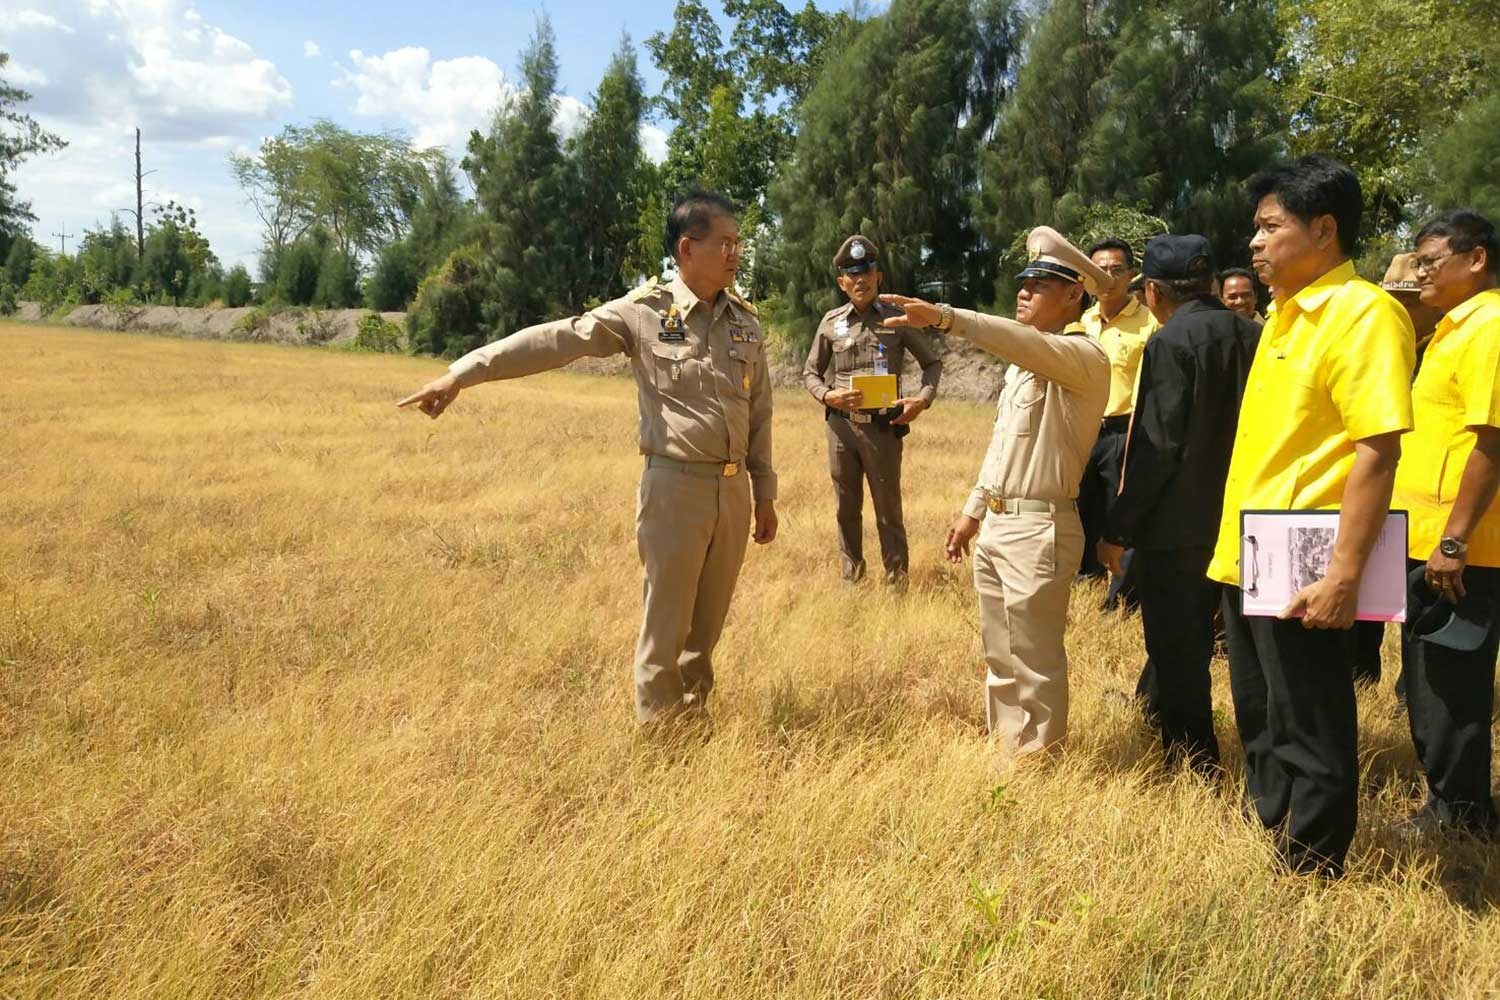 Nakhon Ratchasima Governor Wichian Chantharanothai, front, visits a parched paddy field in Phimai district on Saturday. (Photo by Prasit Tangprasert)